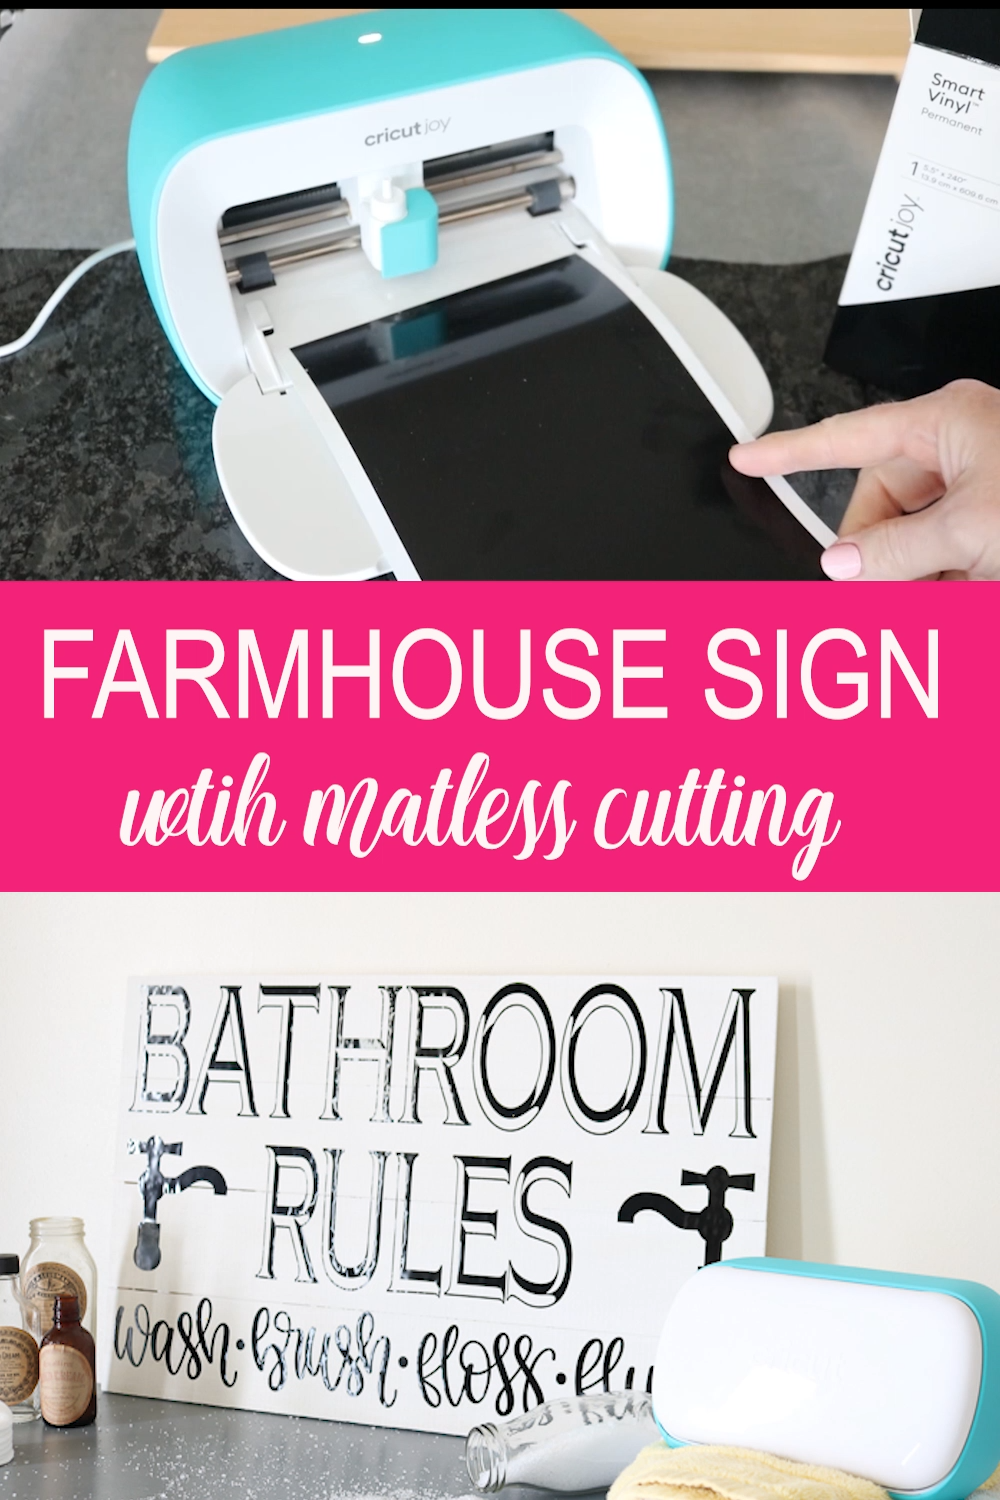 The matless cutting feature allows you to make BIG signs with the small Cricut Joy! Get the cut file for this one and make it for yourself! #cricut #cricutjoy #cricutcreated #farmhouse #farmhousestyle #cricutprojects #crafts #diy